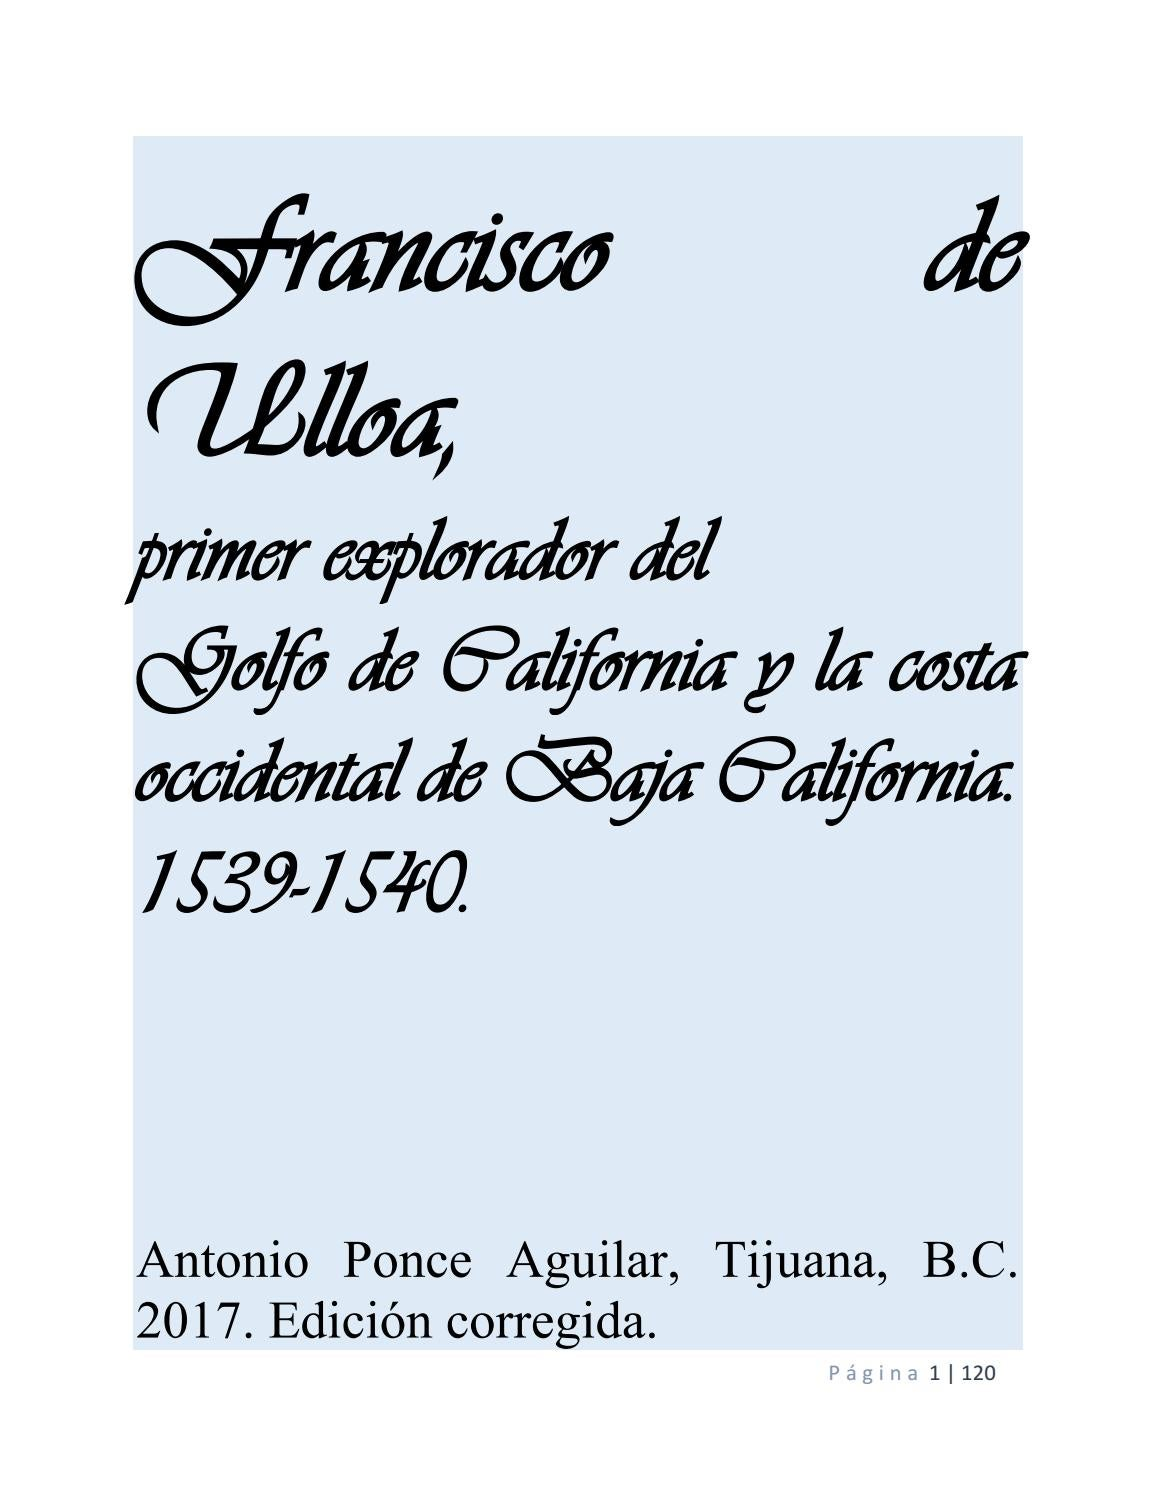 Francisco de ulloa by antonio ponce aguilar - issuu